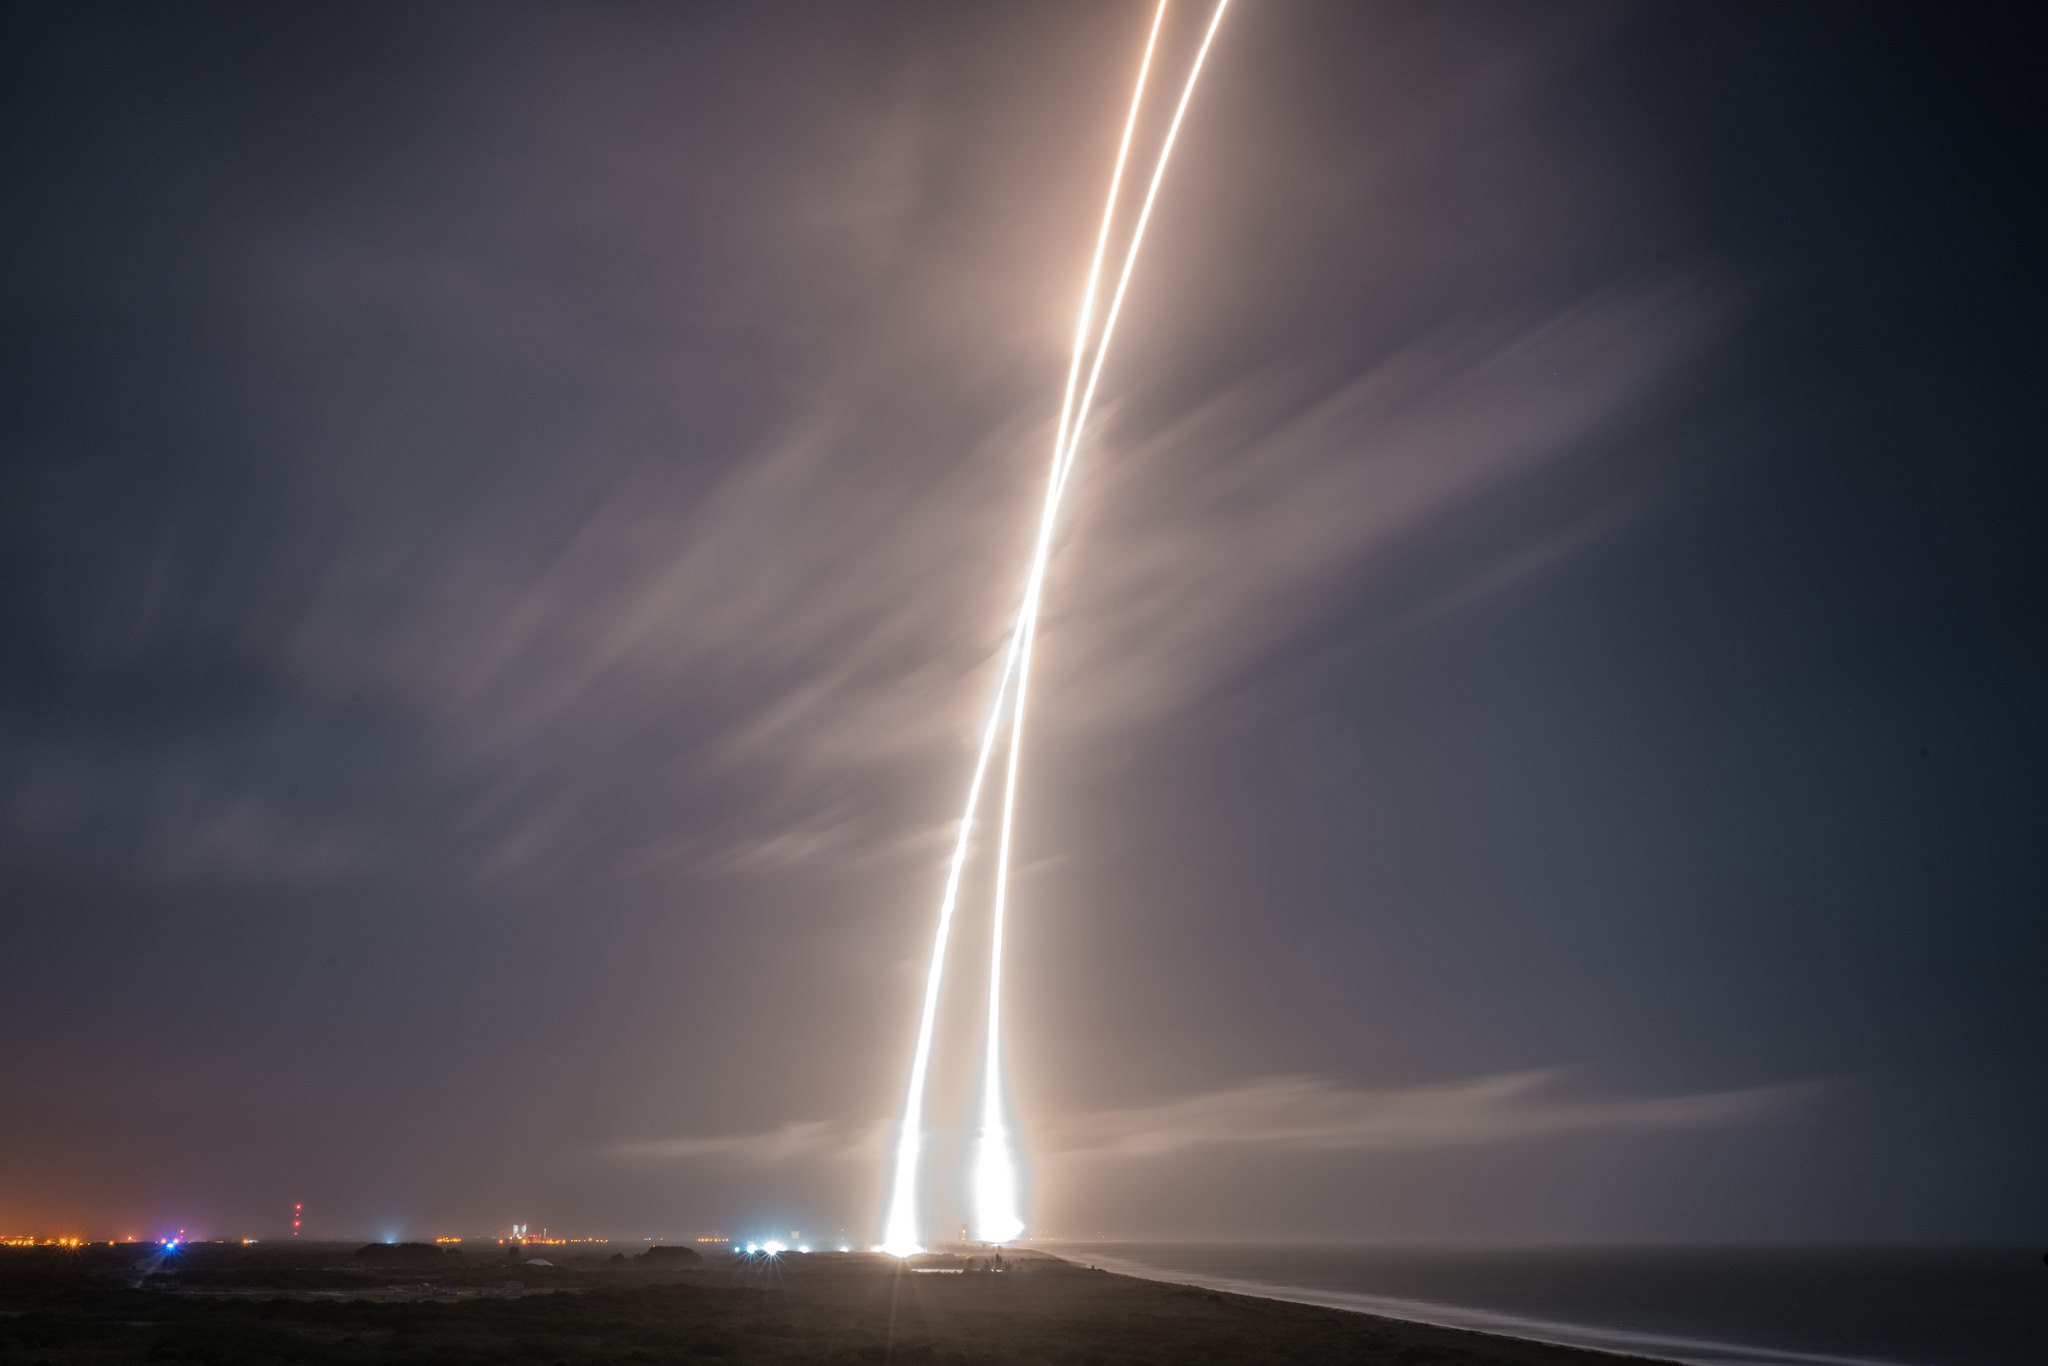 The Falcon 9's ascent and descent tracks are seen in this long exposure photo taken just south of the launch and landing locations. Photo credit: SpaceX